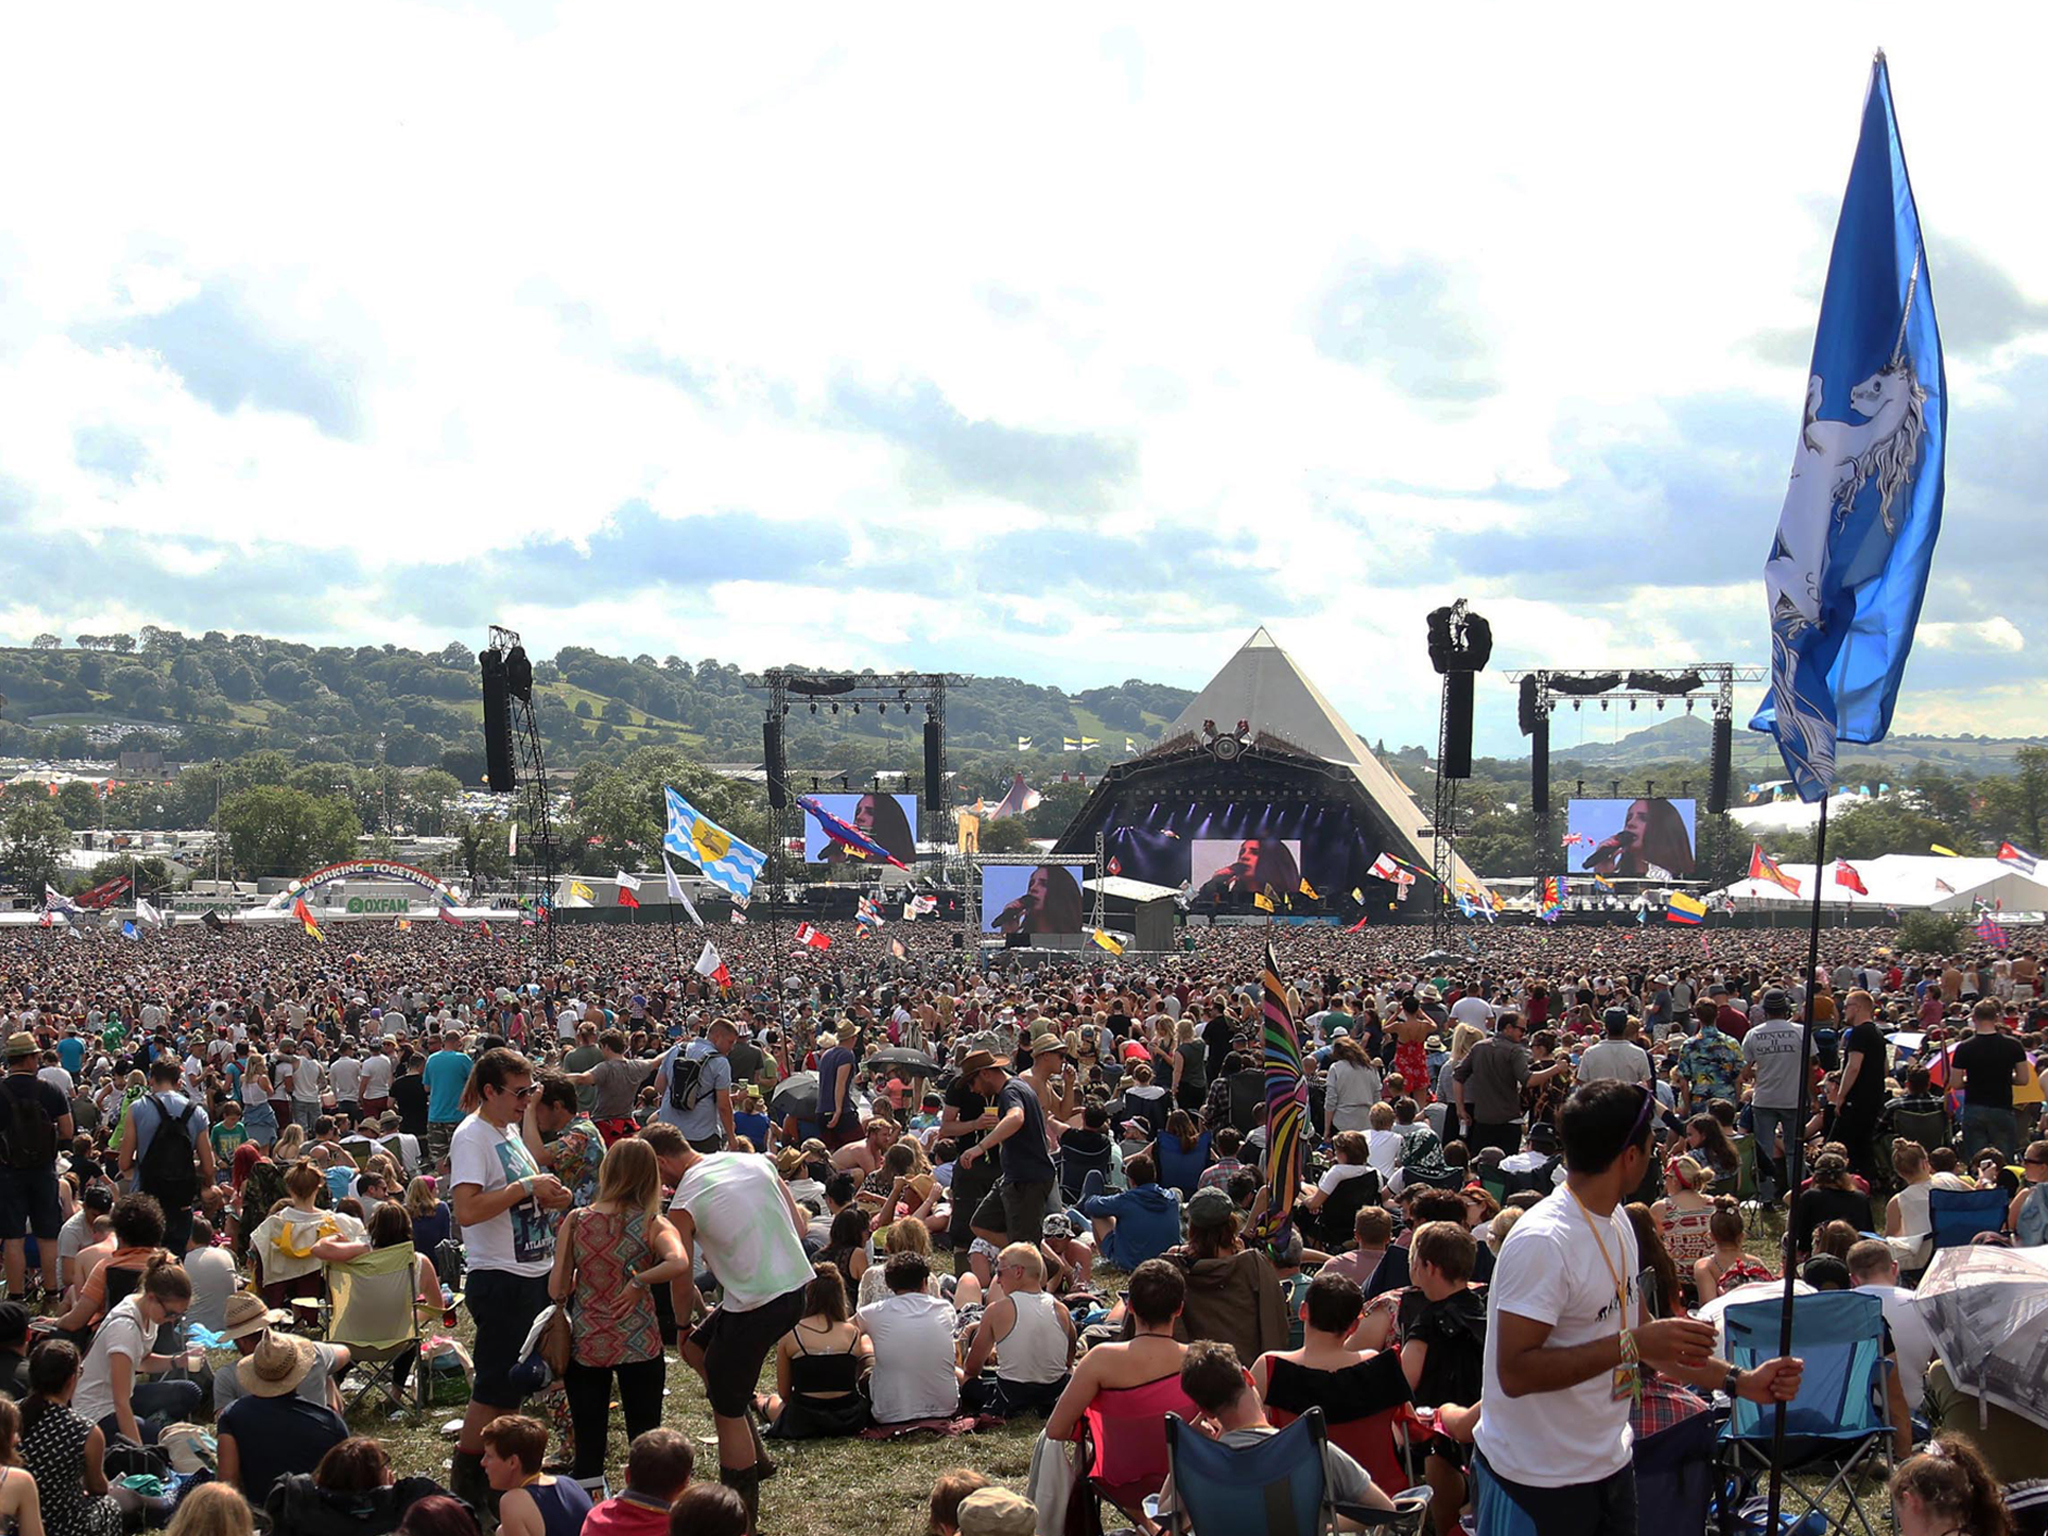 Glastonbury Festival 2016: how to register and get tickets